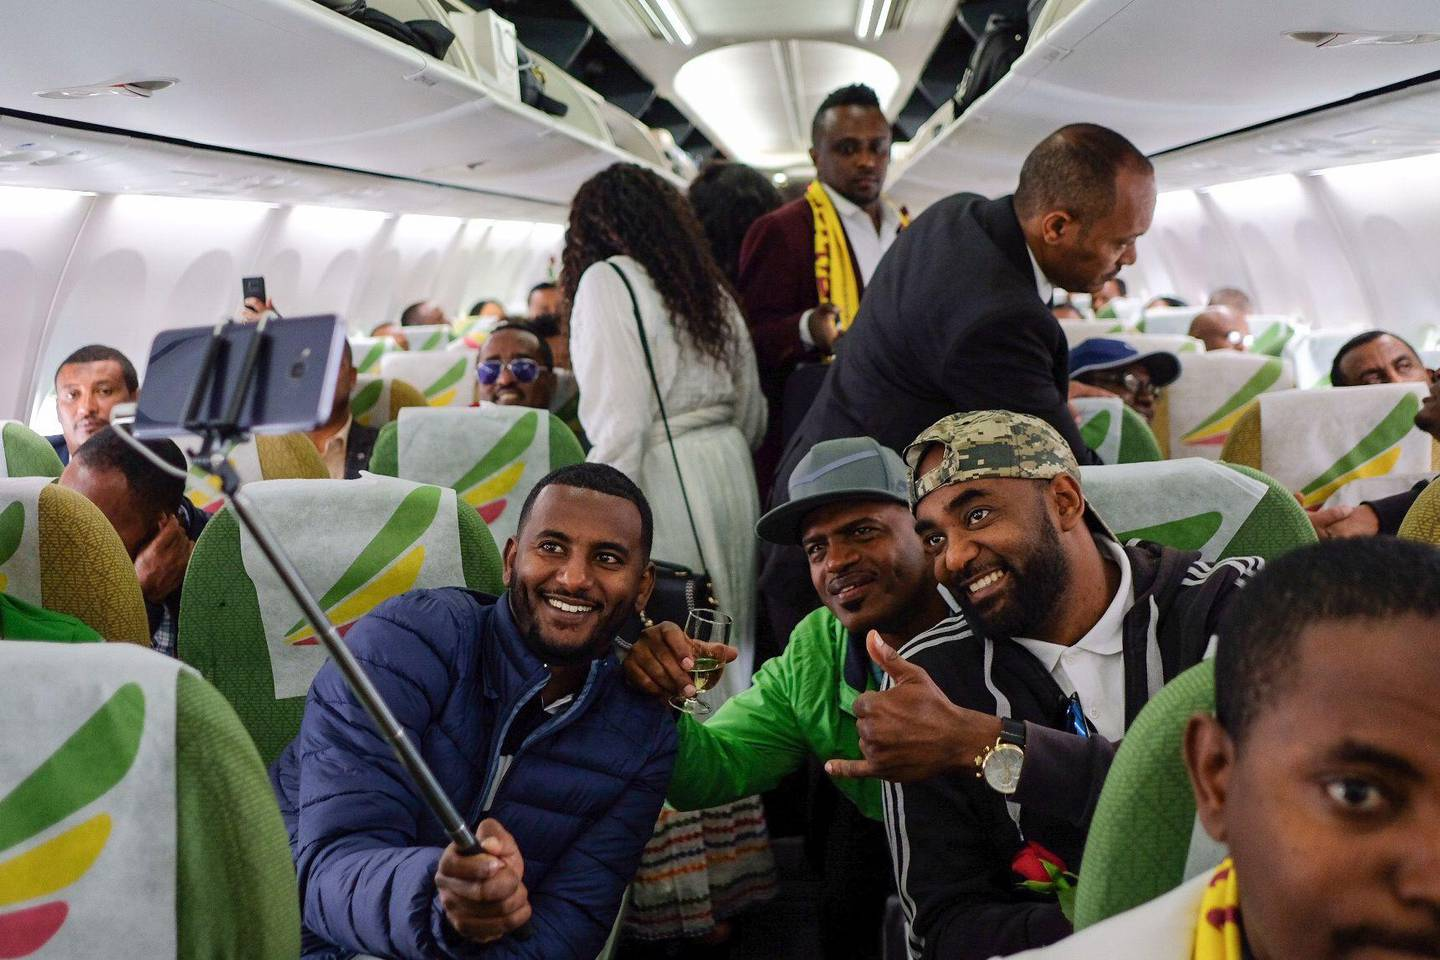 Passengers pose for a selfie picture inside an Ethiopian Airlines flight who departed from the Bole International Airport in Addis Ababa, Ethiopia, to Eritrea's capital Asmara on July 18, 2018.  The first commercial flight to Eritrea in two decades departed on July 18, 2018 from Addis Ababa after the two nations ended their bitter conflict in a whirlwind peace process.  / AFP / Maheder HAILESELASSIE TADESE